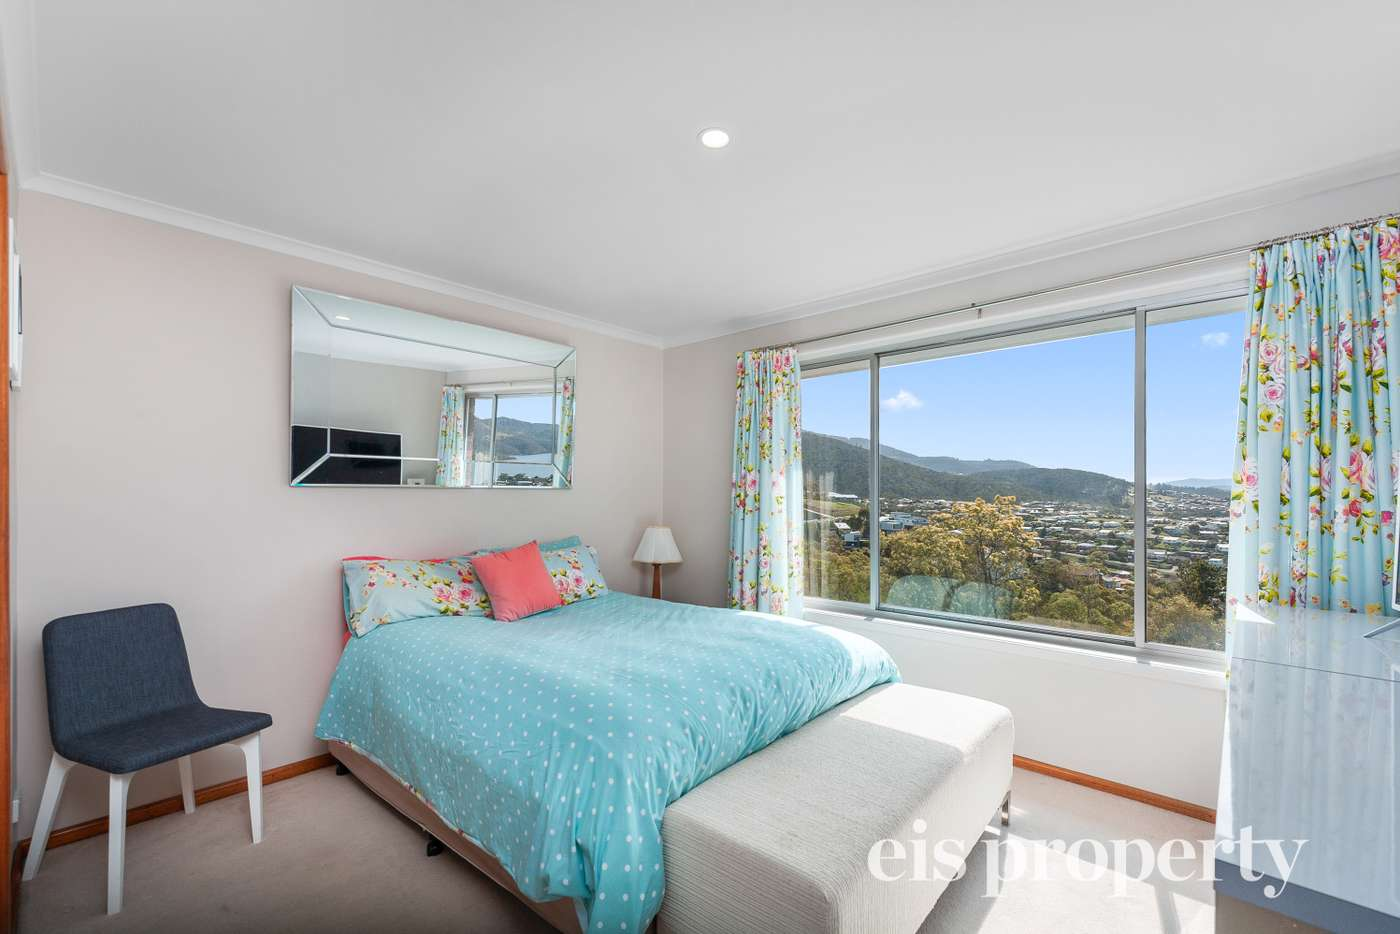 Sixth view of Homely unit listing, 1/14 Officer Street, Rosetta TAS 7010